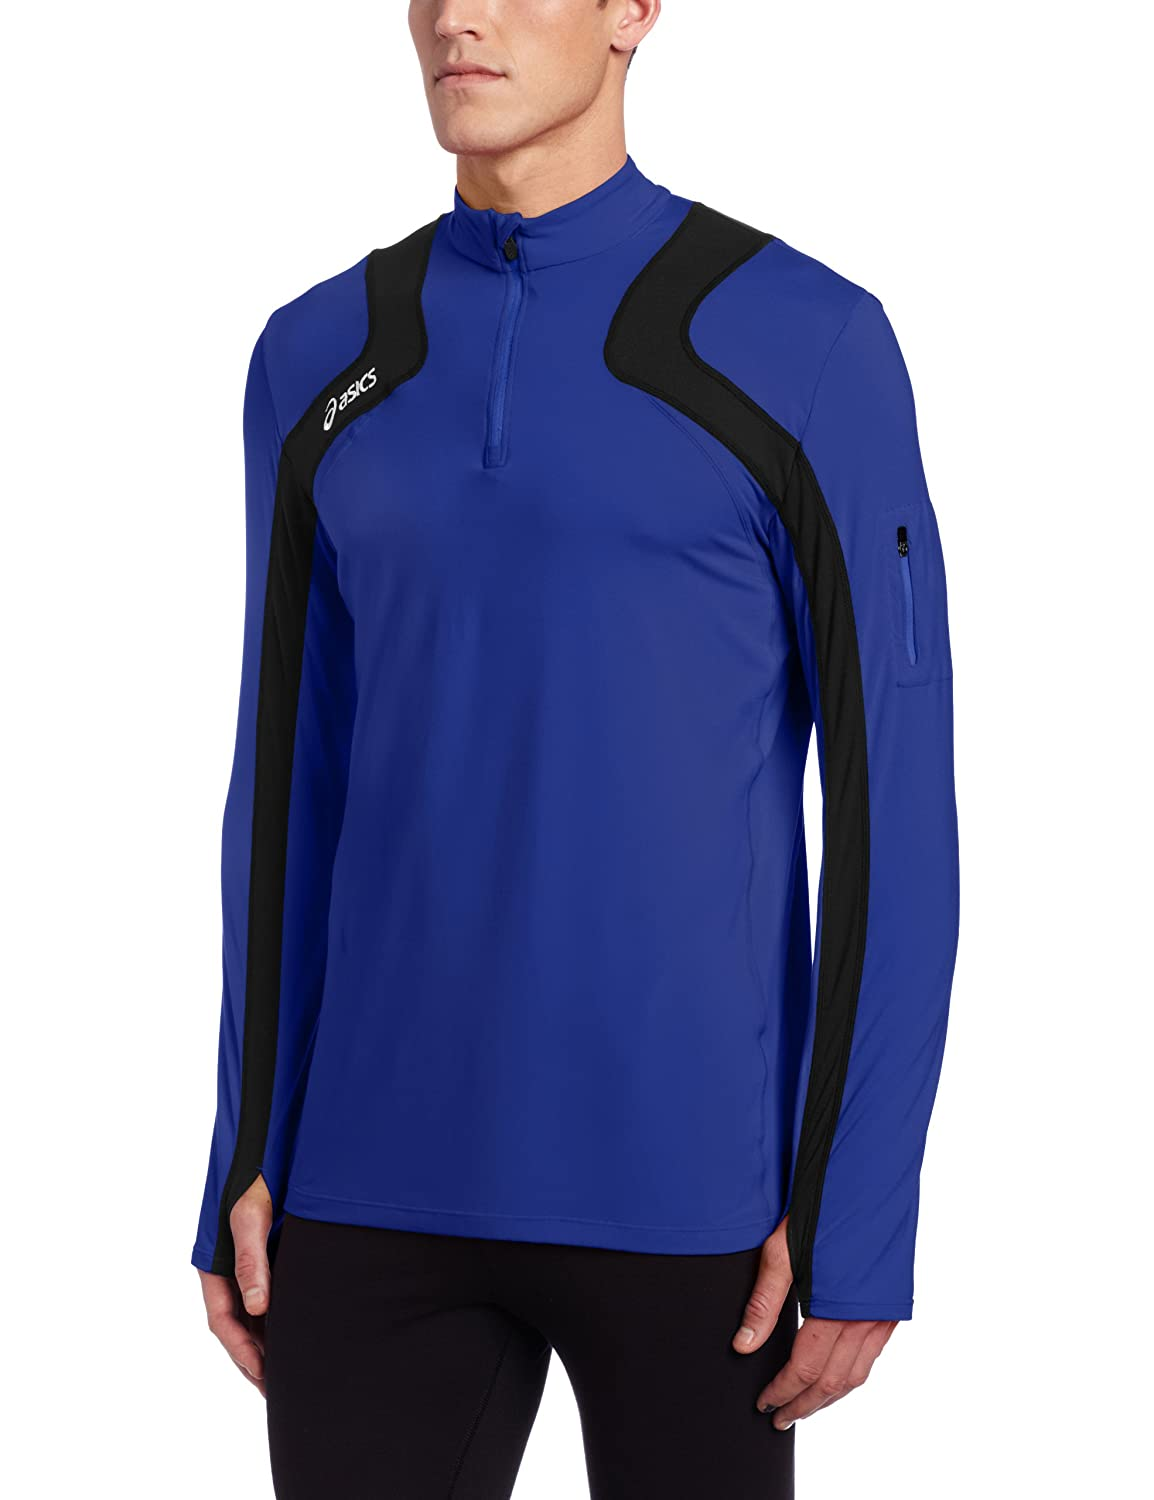 Asics Herren Team Tech Half Zip, Herren, Royal schwarz, XX-Large